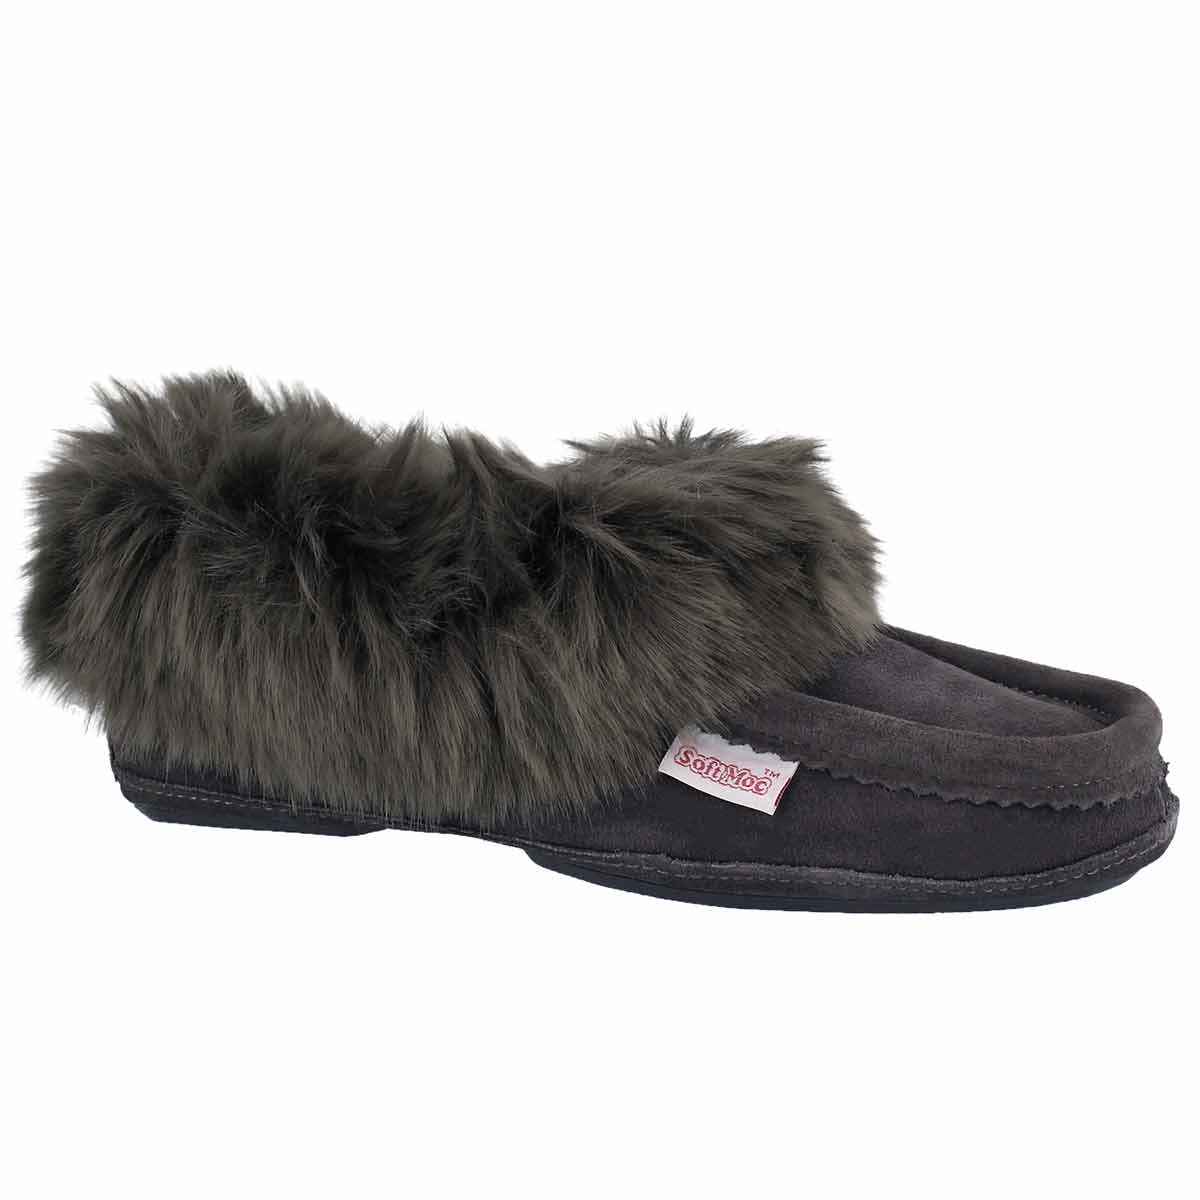 Women's TOO CUTE grey lined moccasins